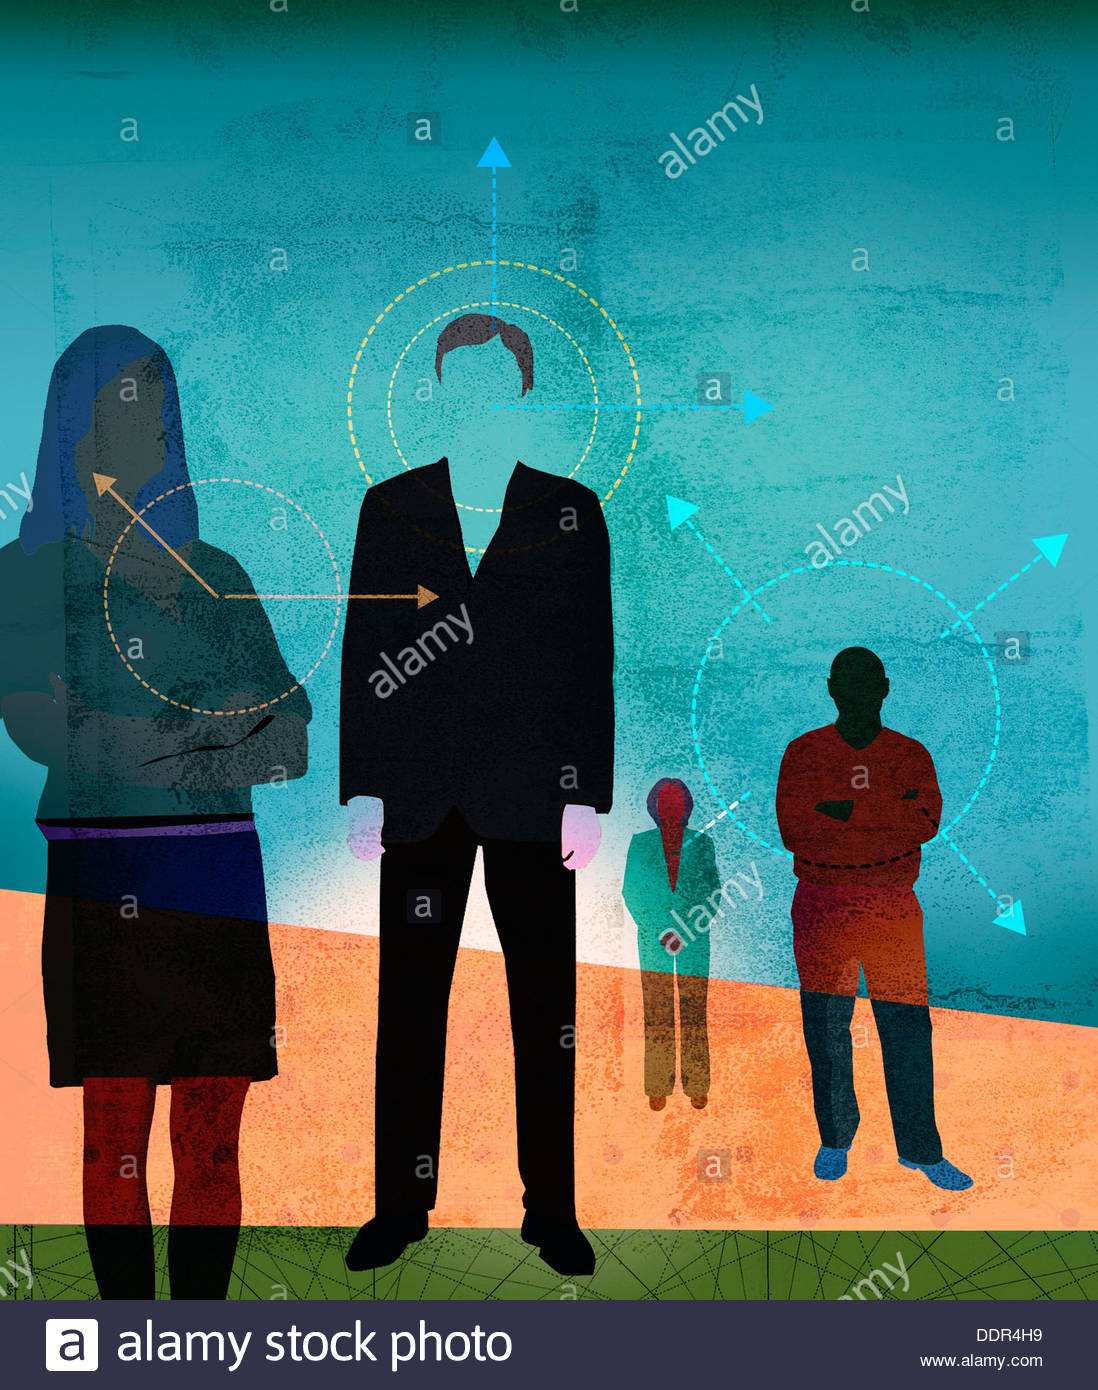 Arrows and circles around men and women - Stock Image